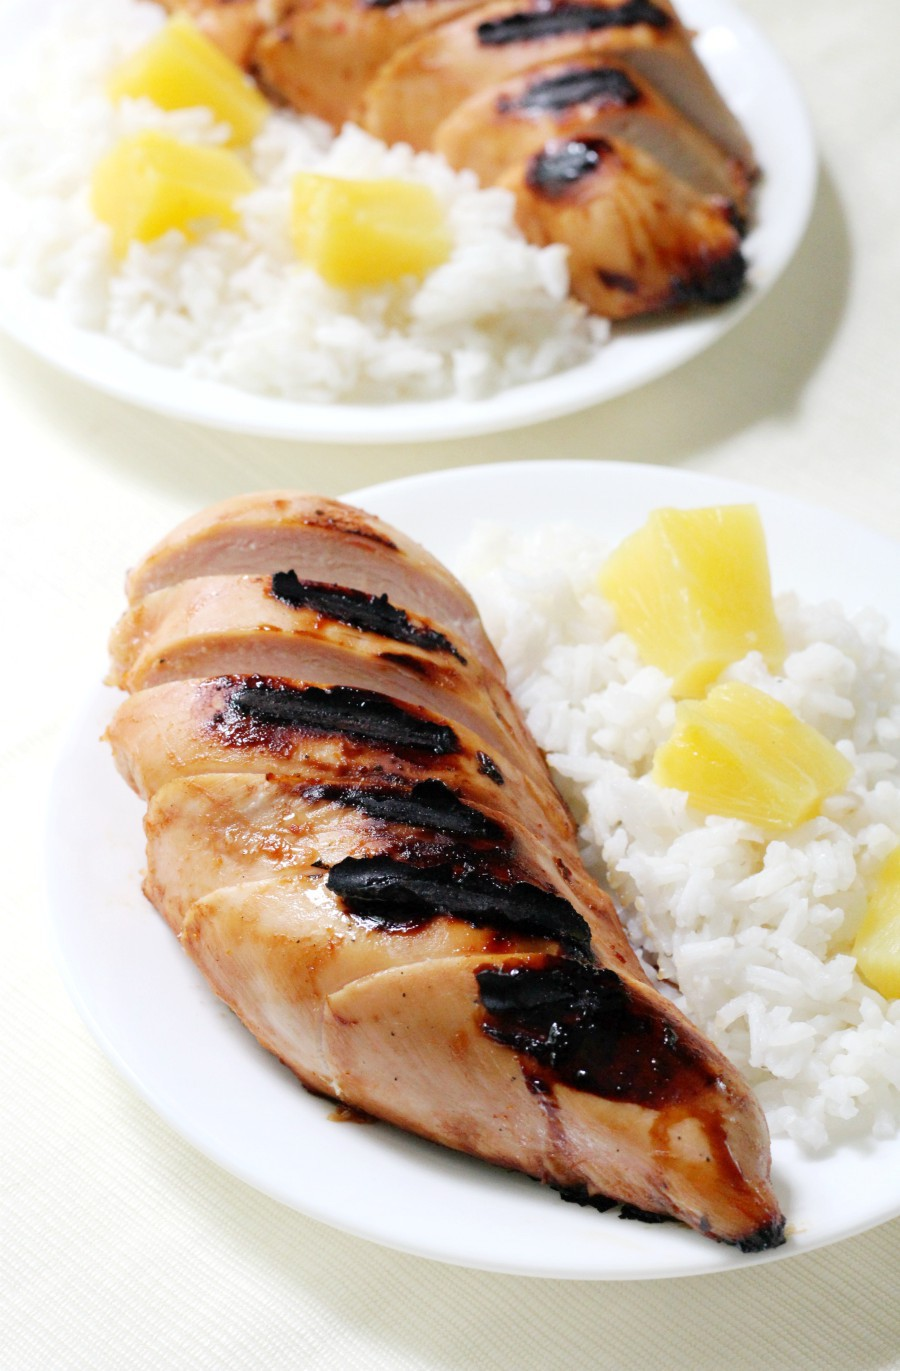 outer-side-cut-grilled-hawaiian-chicken